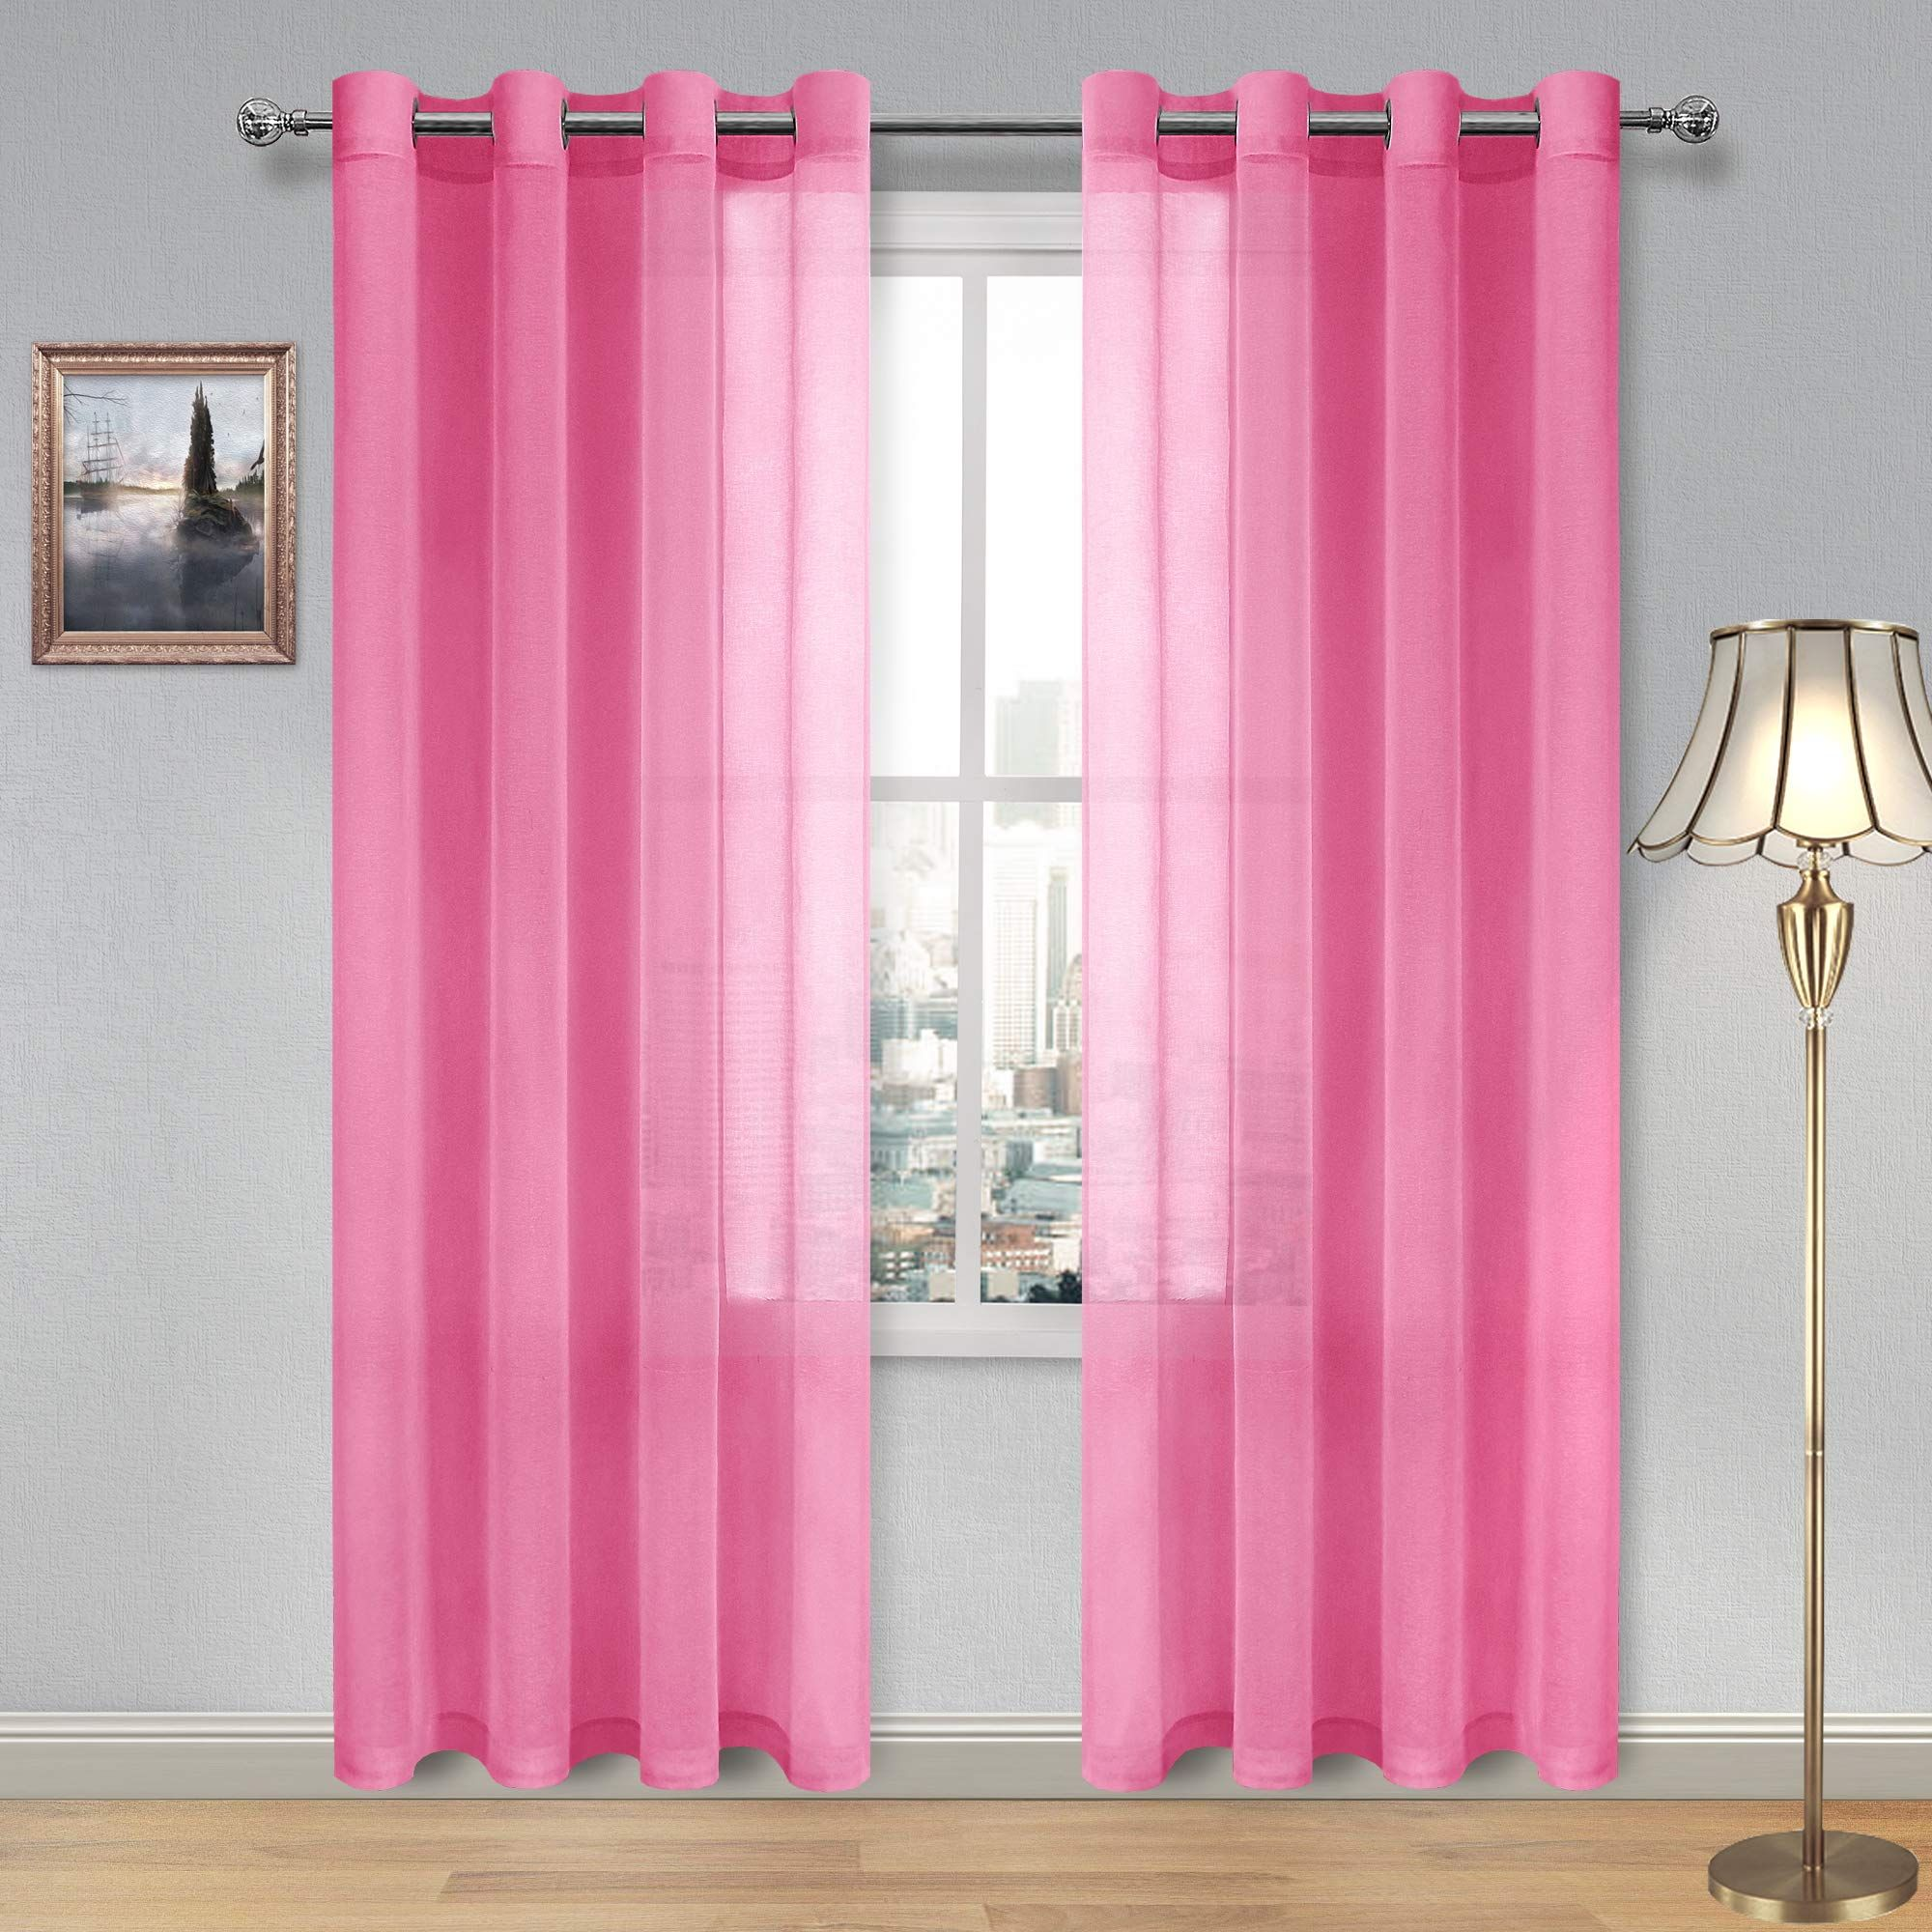 Dwcn Sheer Curtains Grommet Living Room Curtains Linen Look Hot